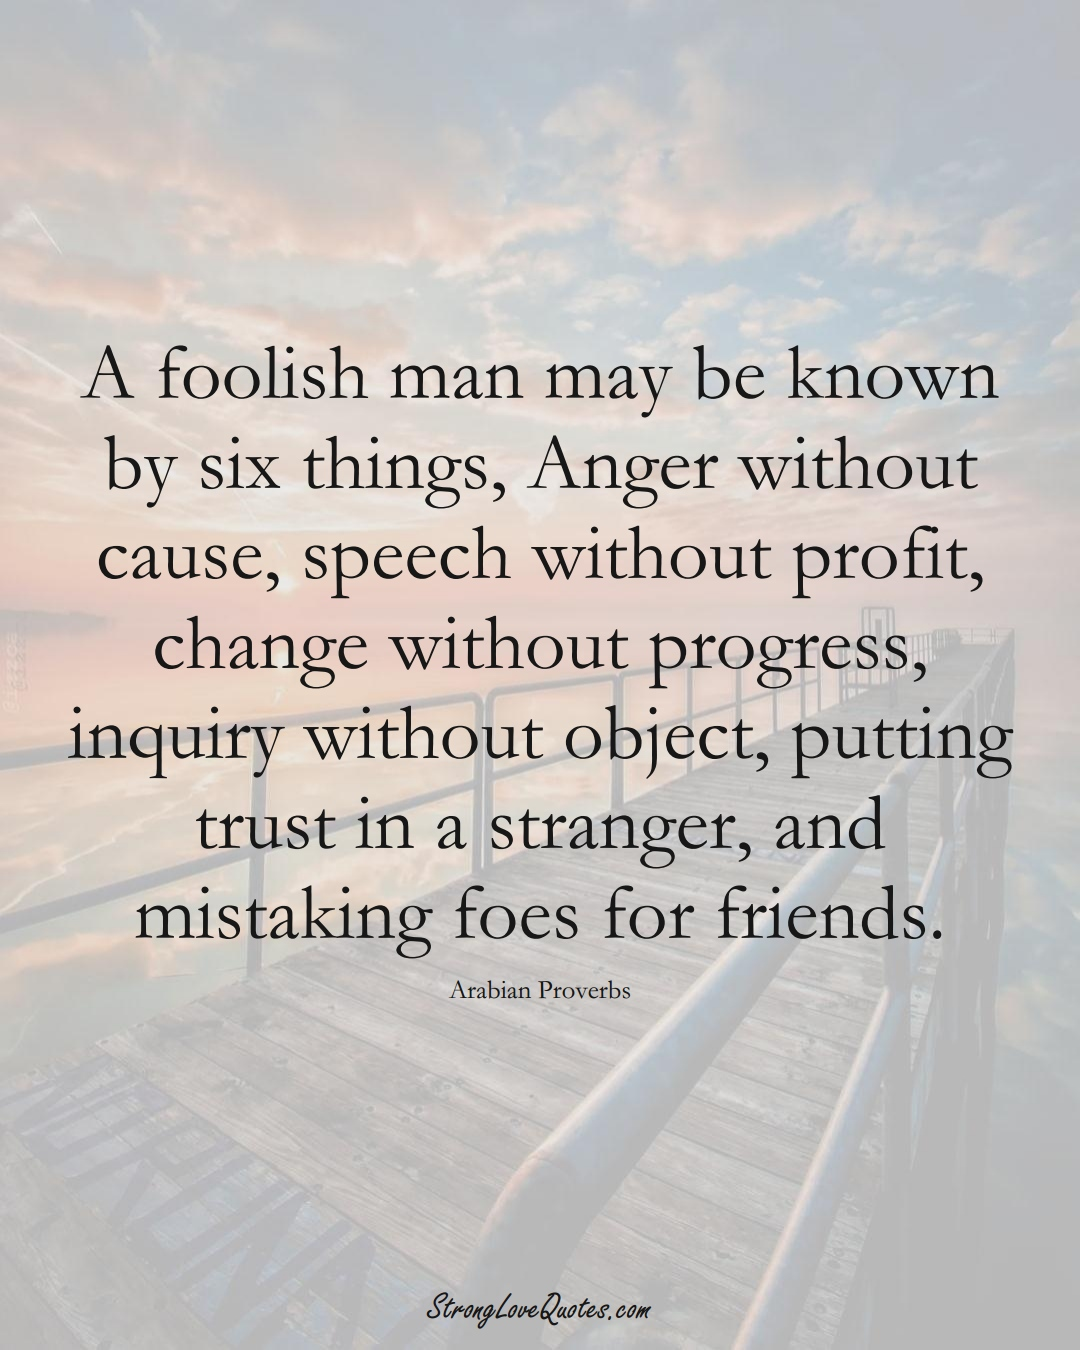 A foolish man may be known by six things, Anger without cause, speech without profit, change without progress, inquiry without object, putting trust in a stranger, and mistaking foes for friends. (Arabian Sayings);  #aVarietyofCulturesSayings